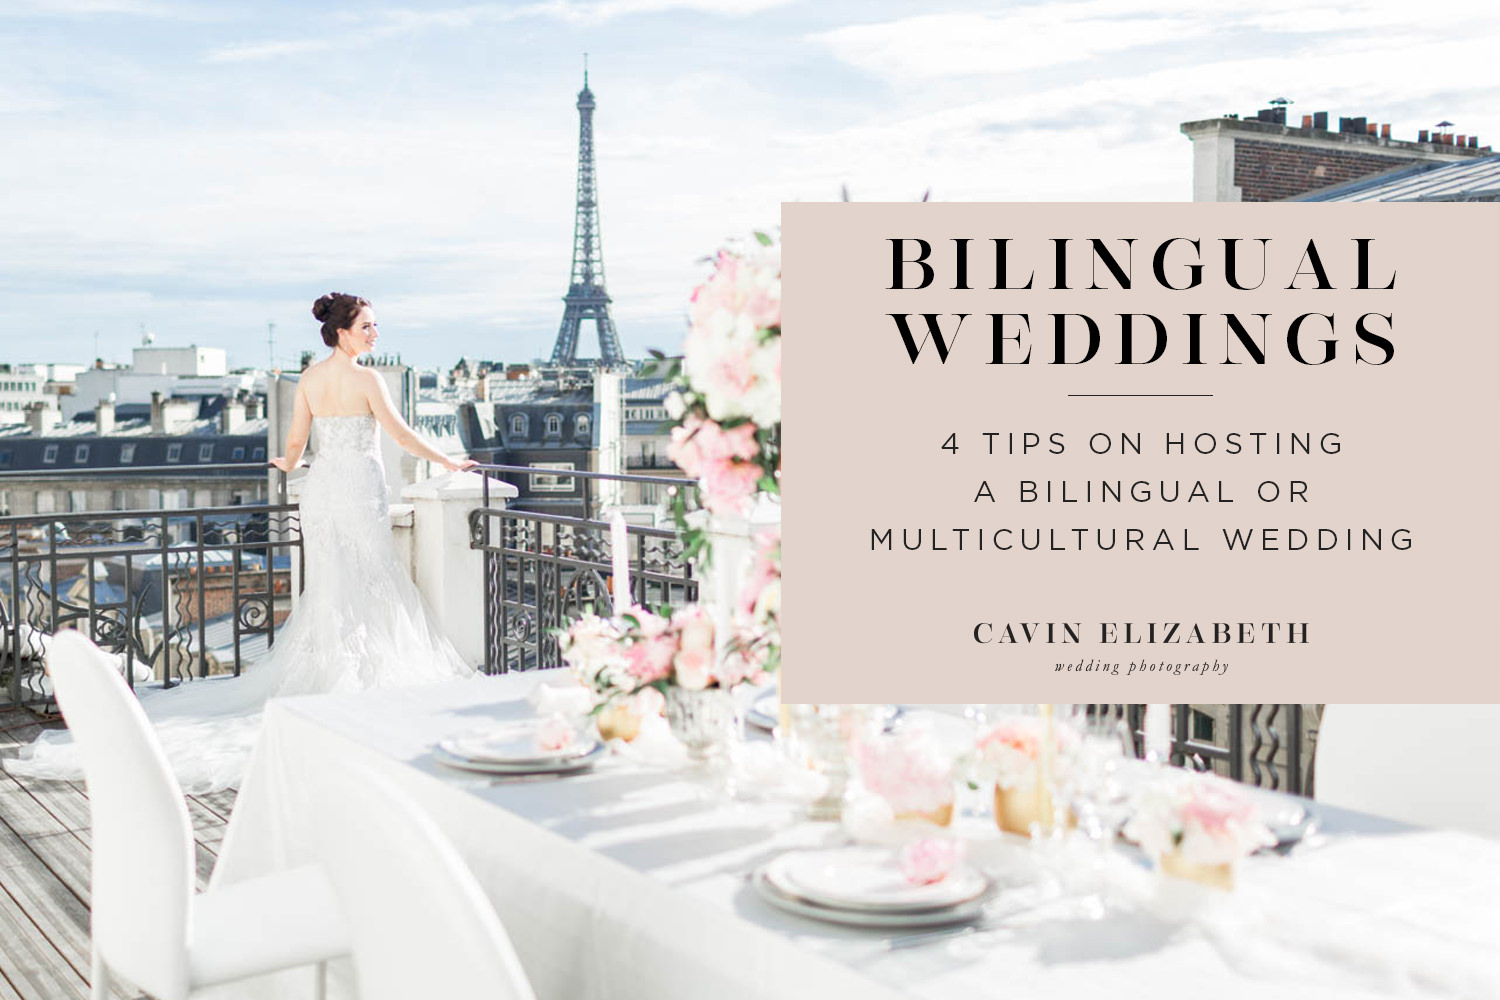 4 Top Bilingual Wedding Tips for a Stress-Free Day, how to have a multicultural or bilingual wedding of blending two sides of the family and making all feel welcome